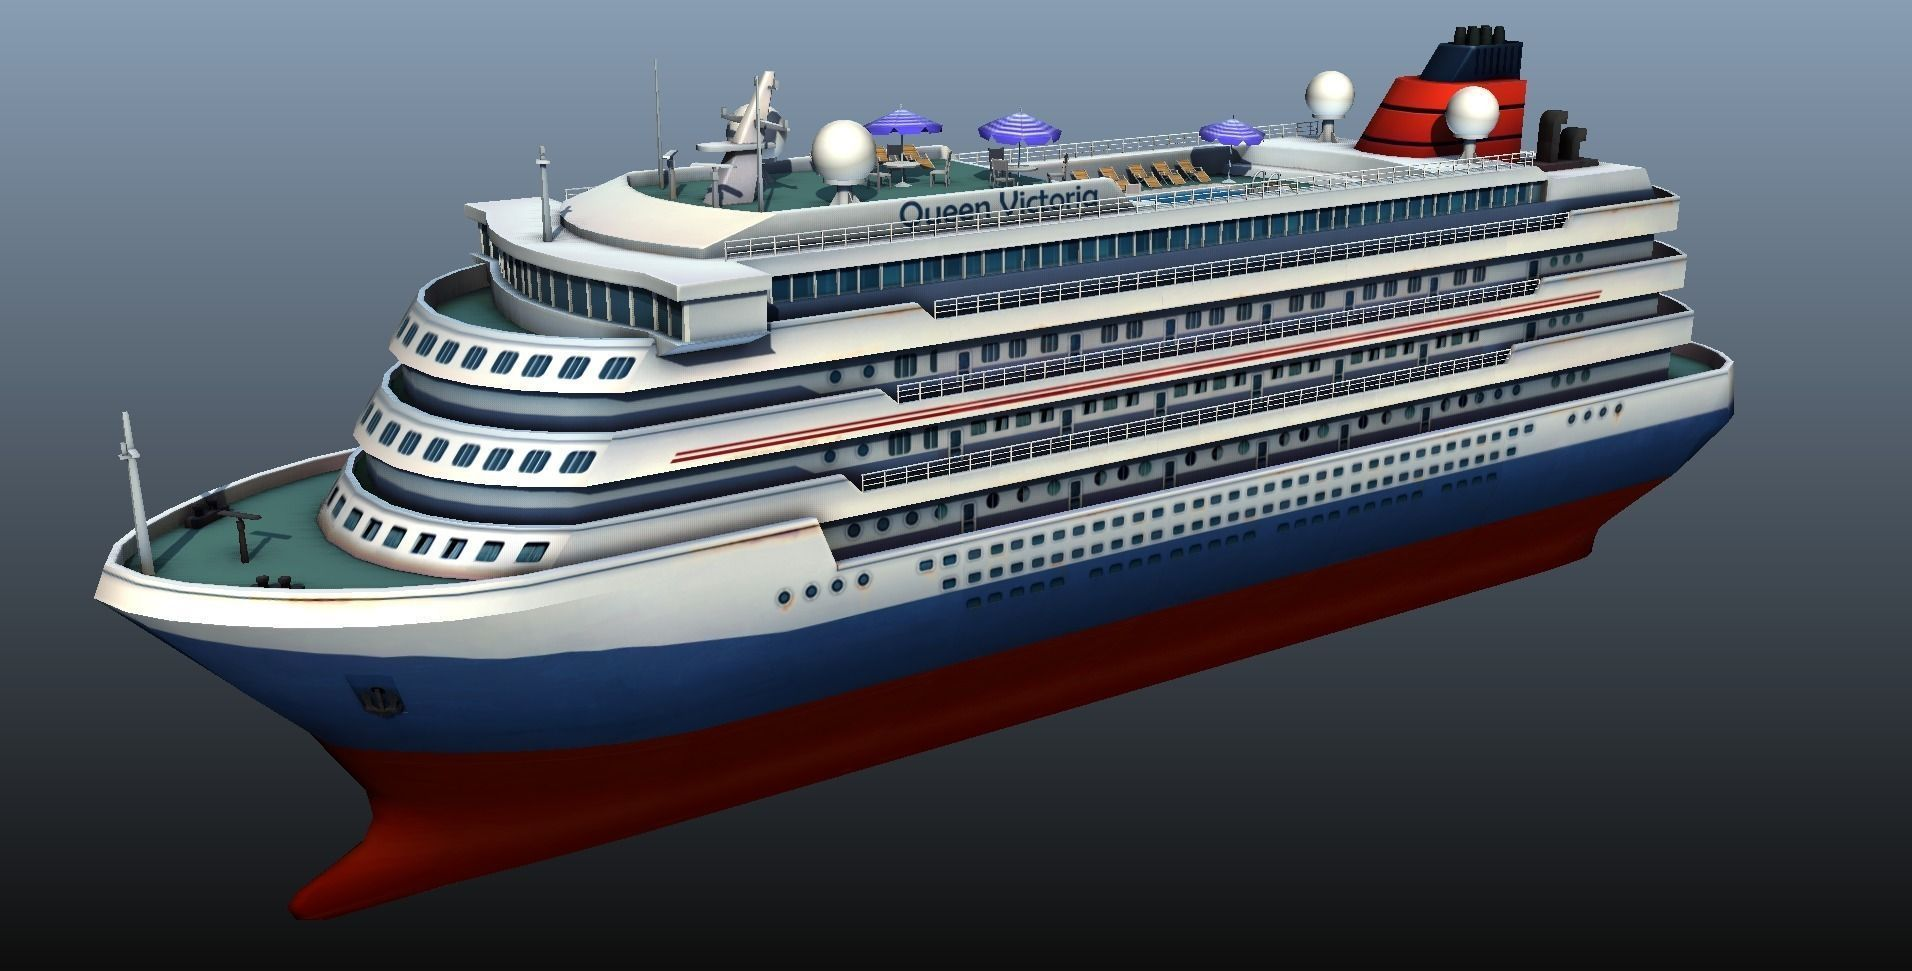 Cruise Liner - low poly